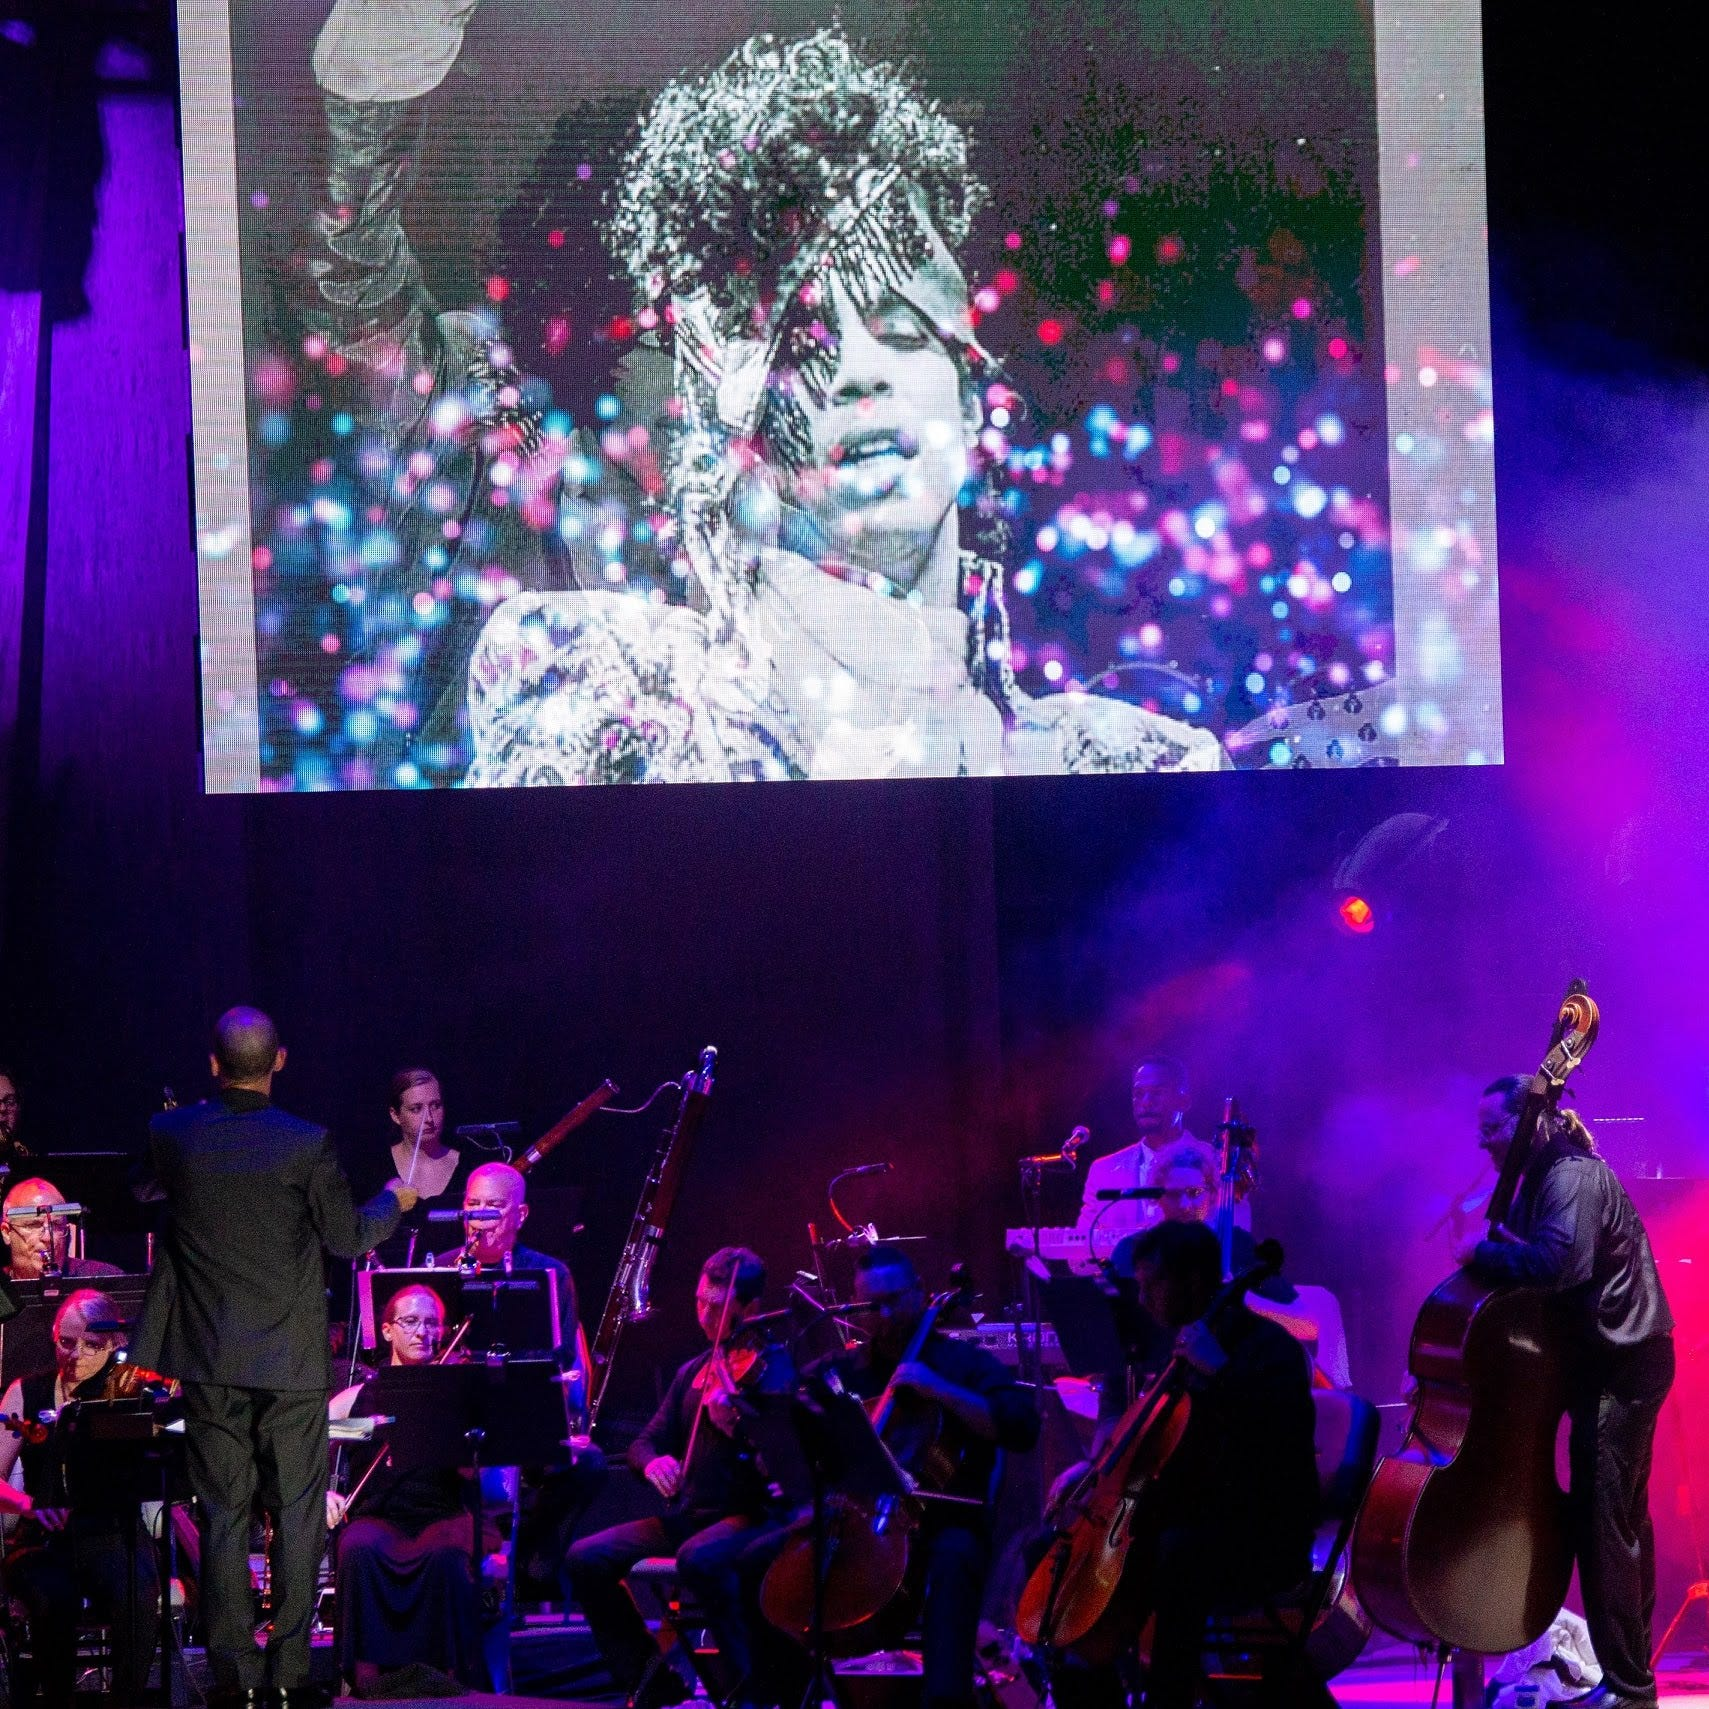 Symphonic night of Prince music hits peak with video excerpt from the man himself